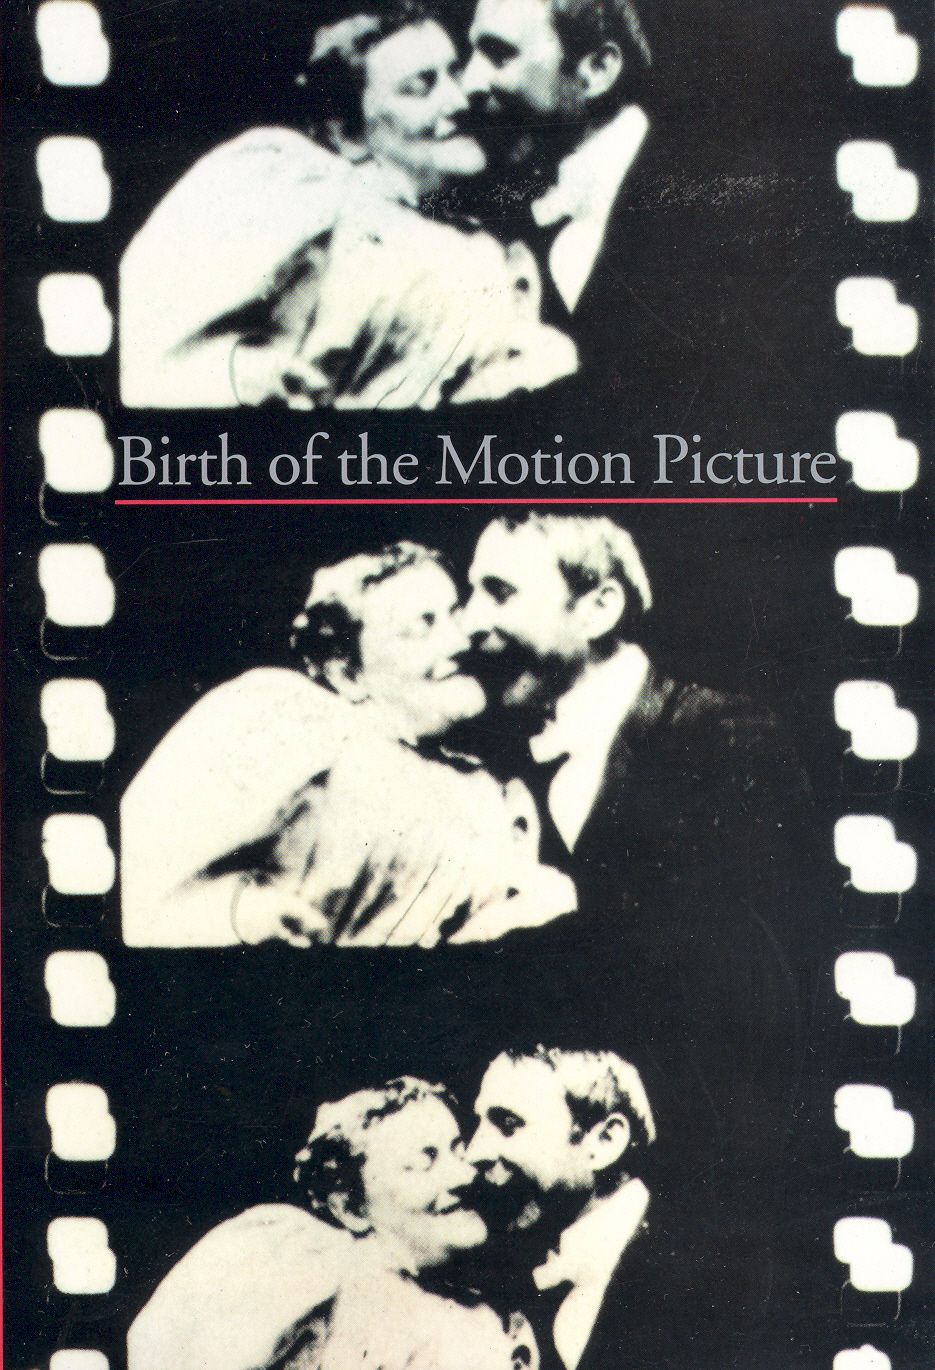 toulet-emanuelle-birth-of-the-motion-picture